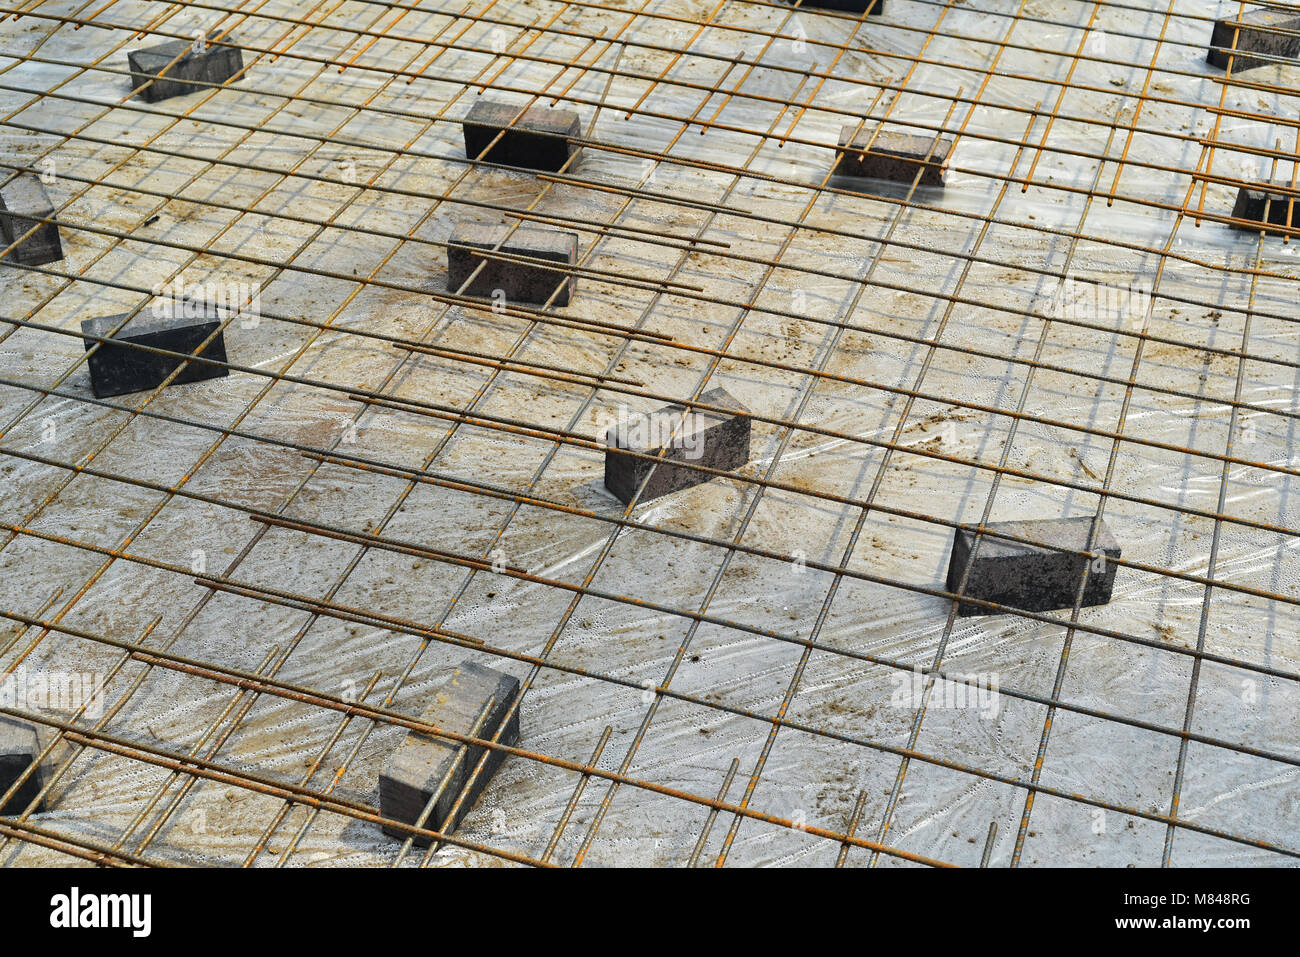 Iron Rebar, ready for concrete to be poured - Stock Image